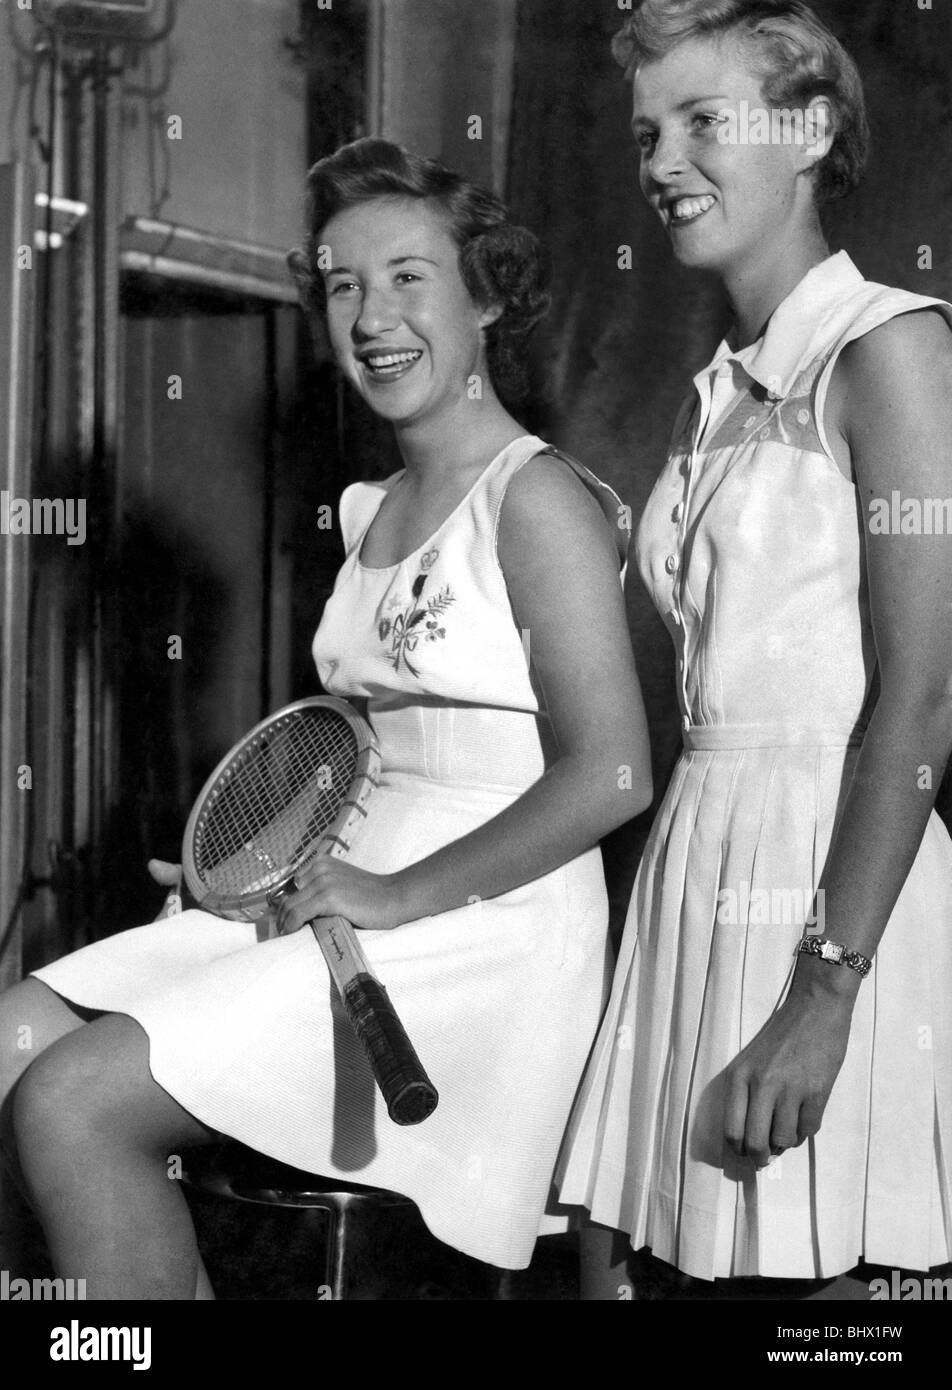 the left Maureen Connolly wears a tennis outfit made of Italian